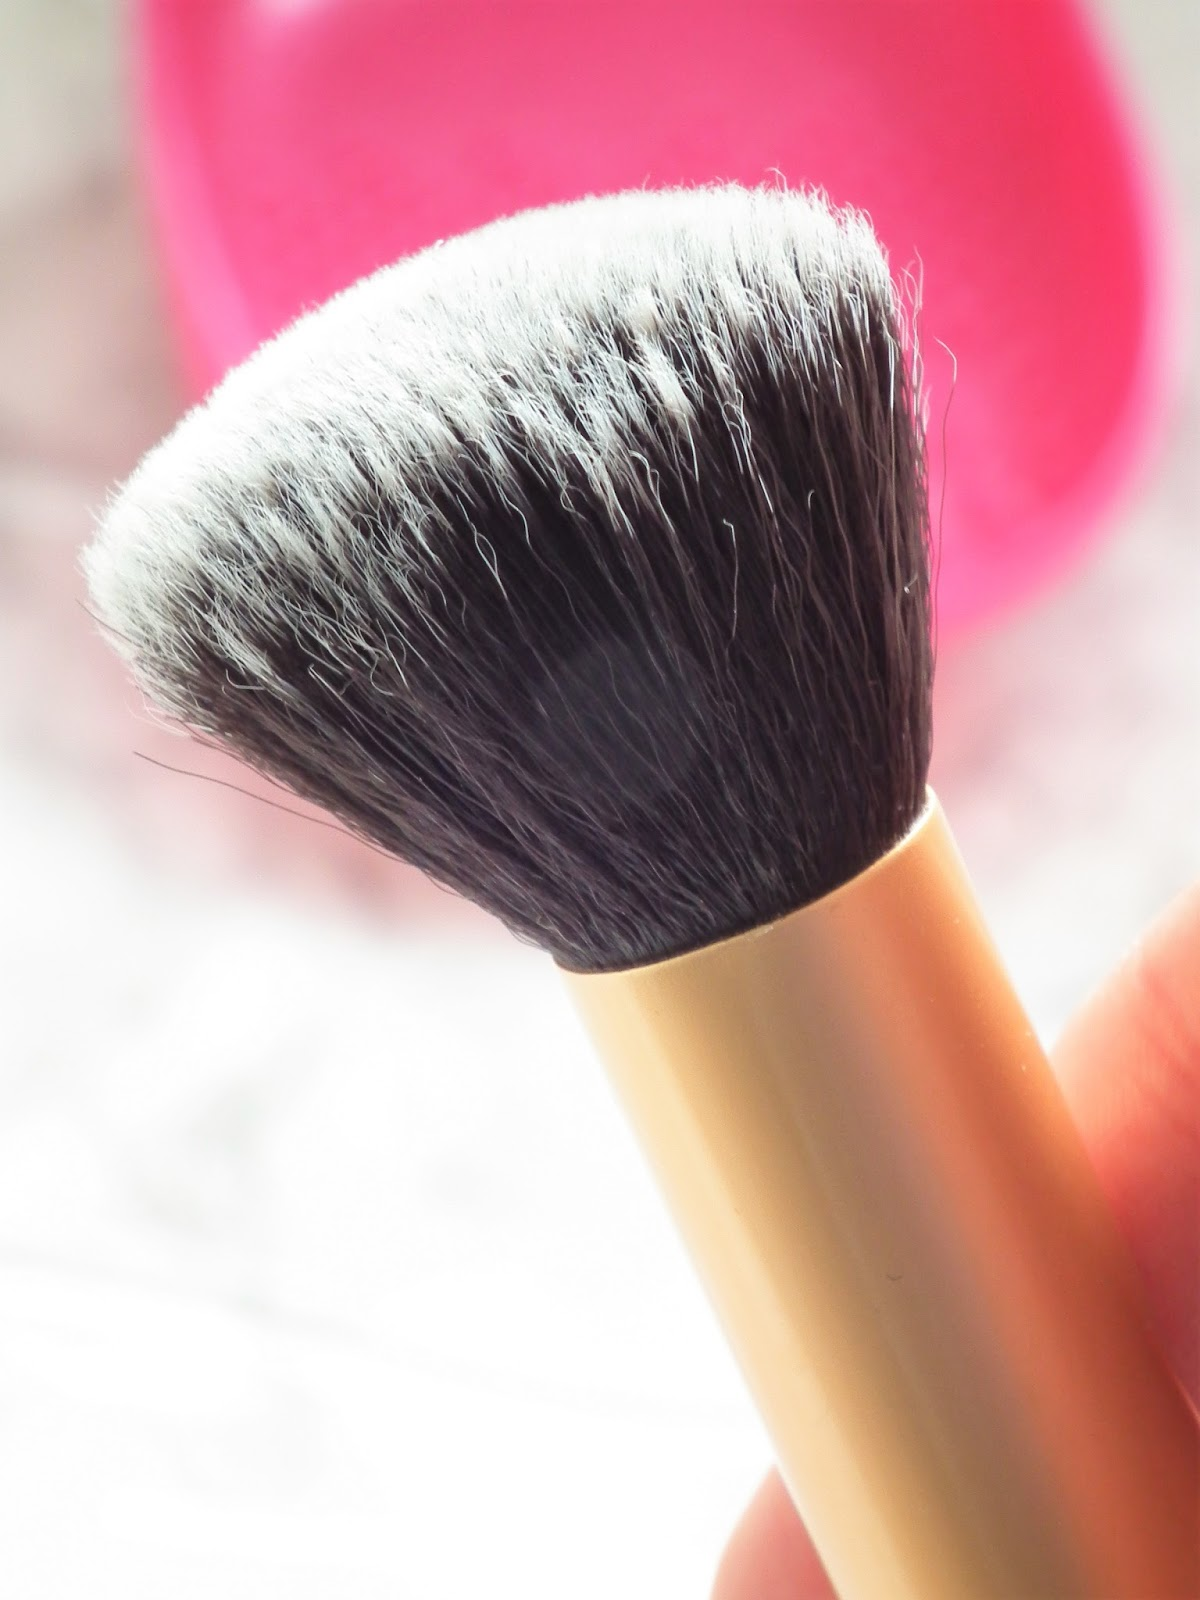 Easy Brush Cleansing With Real Techniques